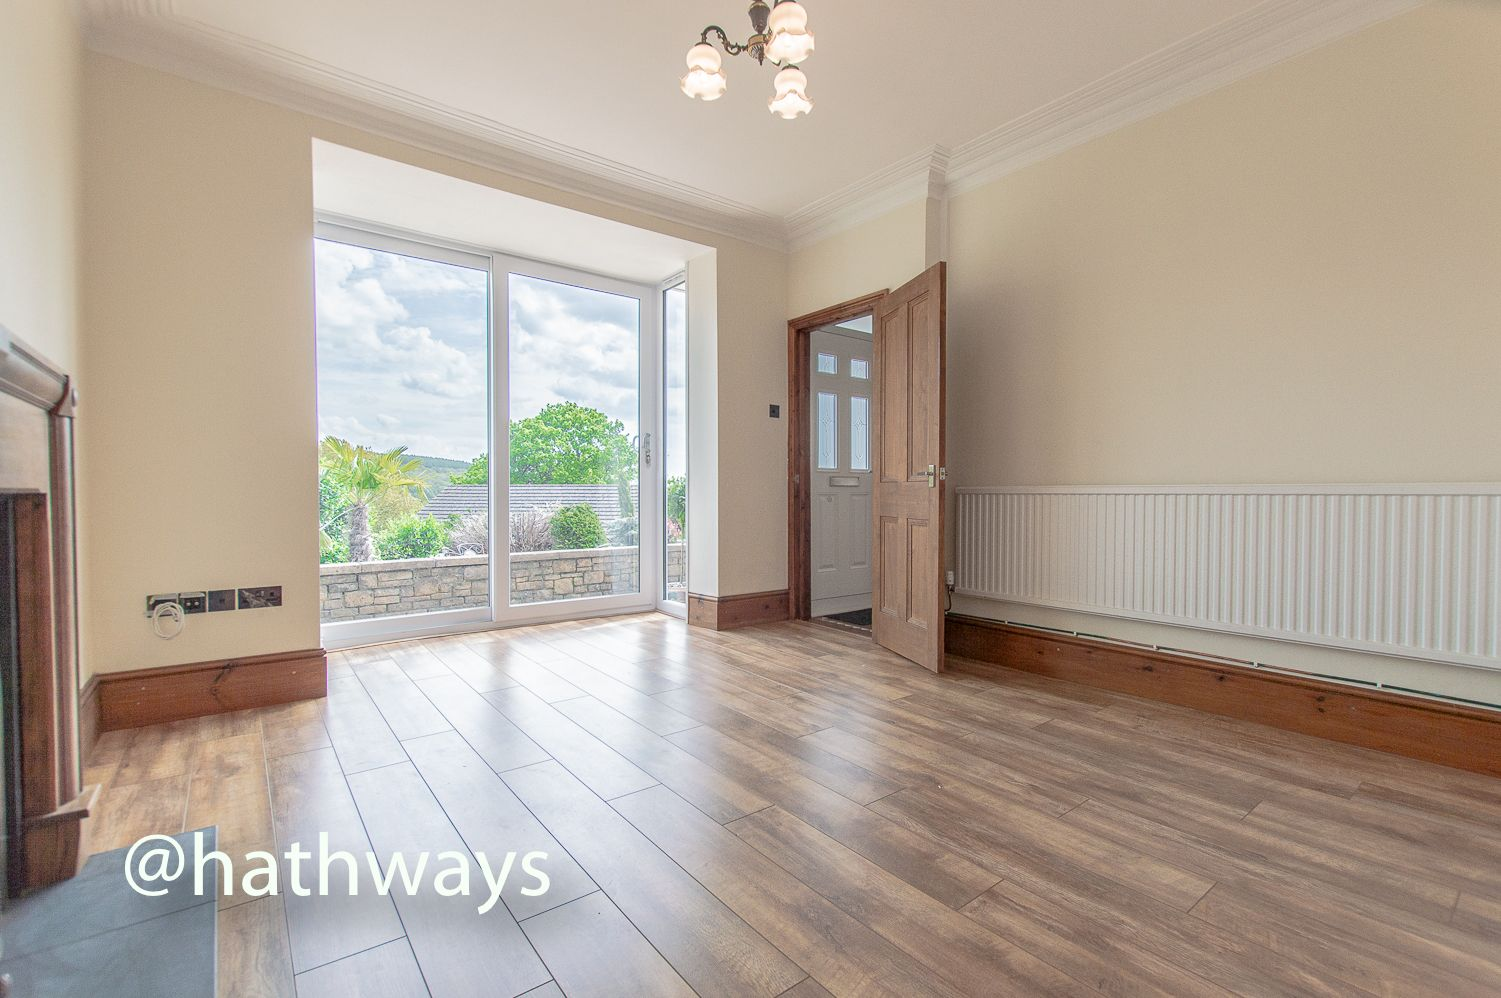 4 bed house for sale in Lower Stoney Road  - Property Image 7